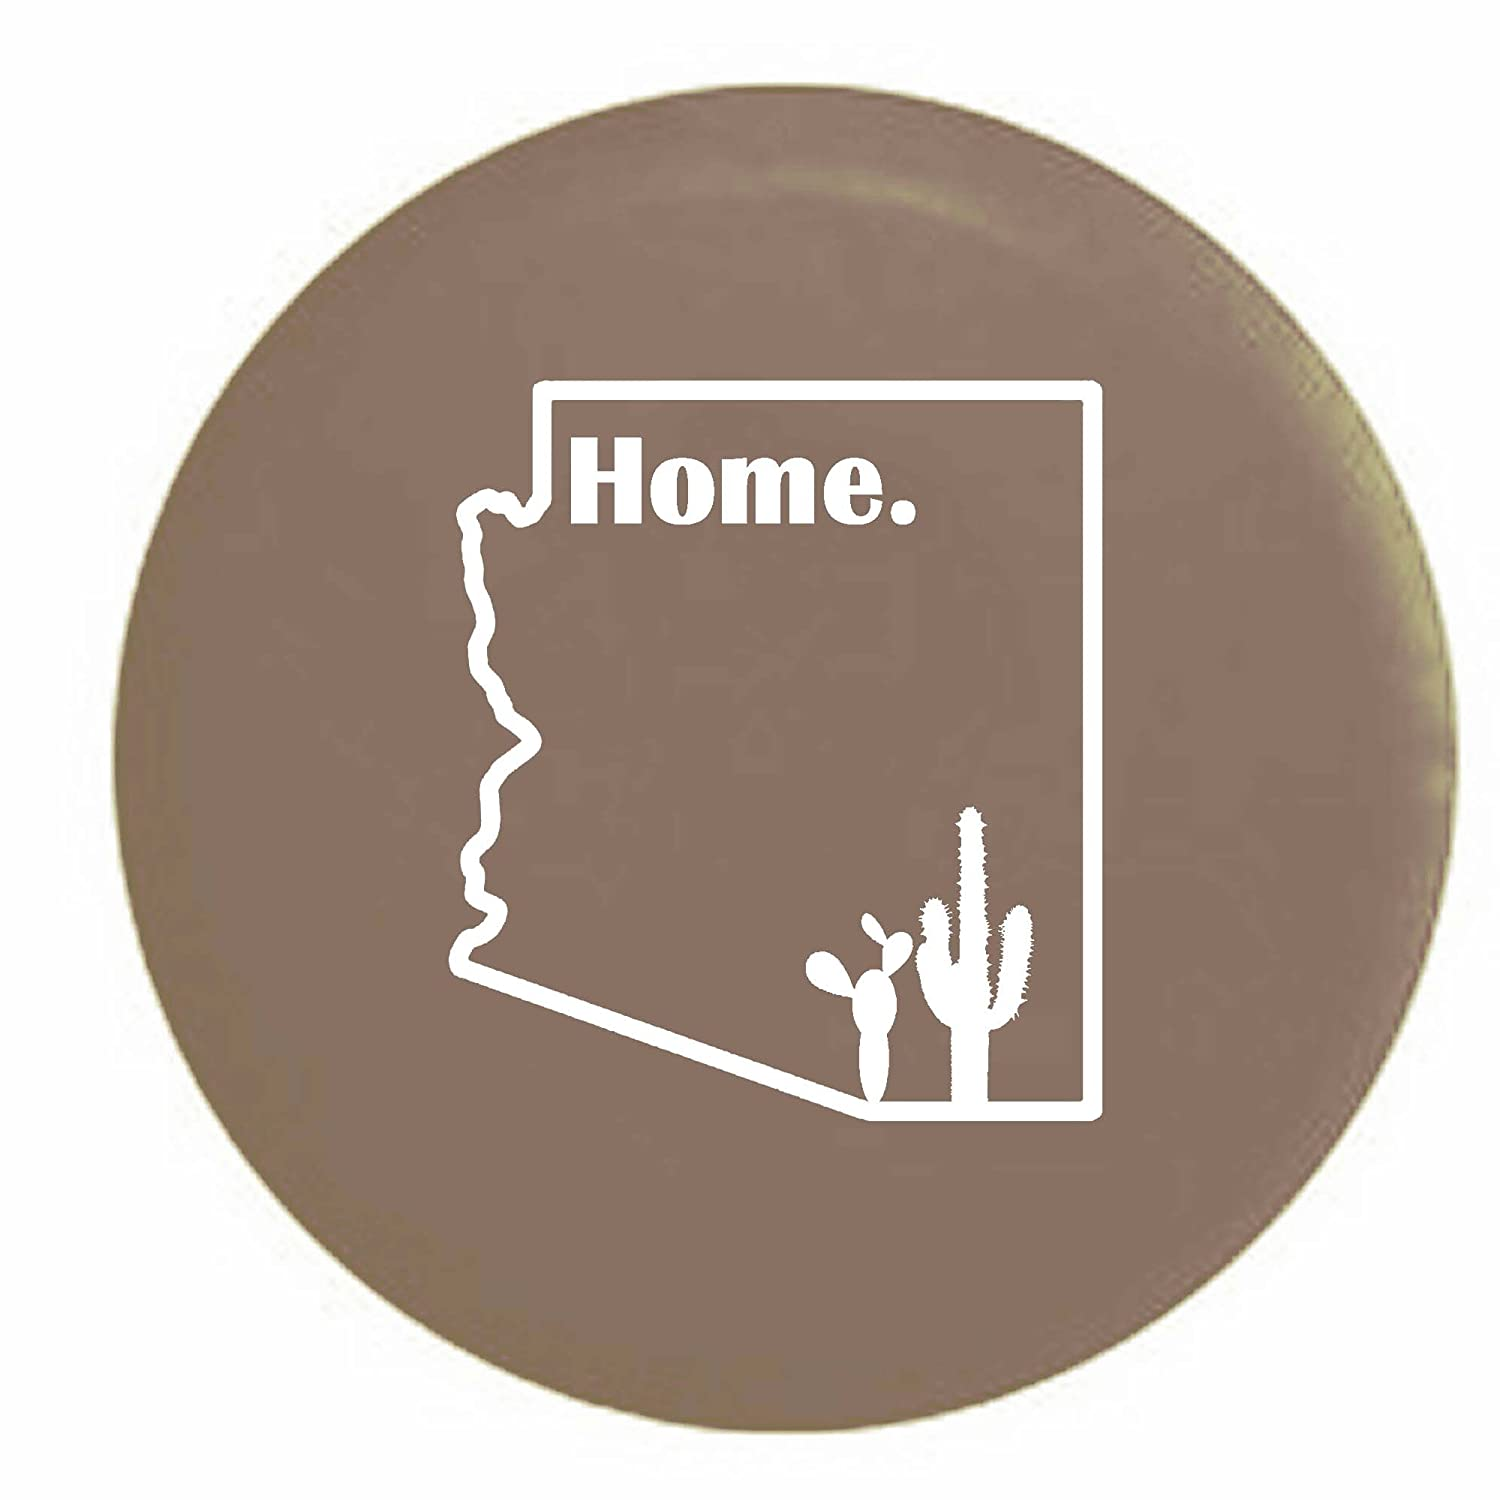 Pike Stealth - Arizona Desert Cactus Home State Edition RV Spare Tire Cover OEM Vinyl Black 27.5 in Pike Outdoors